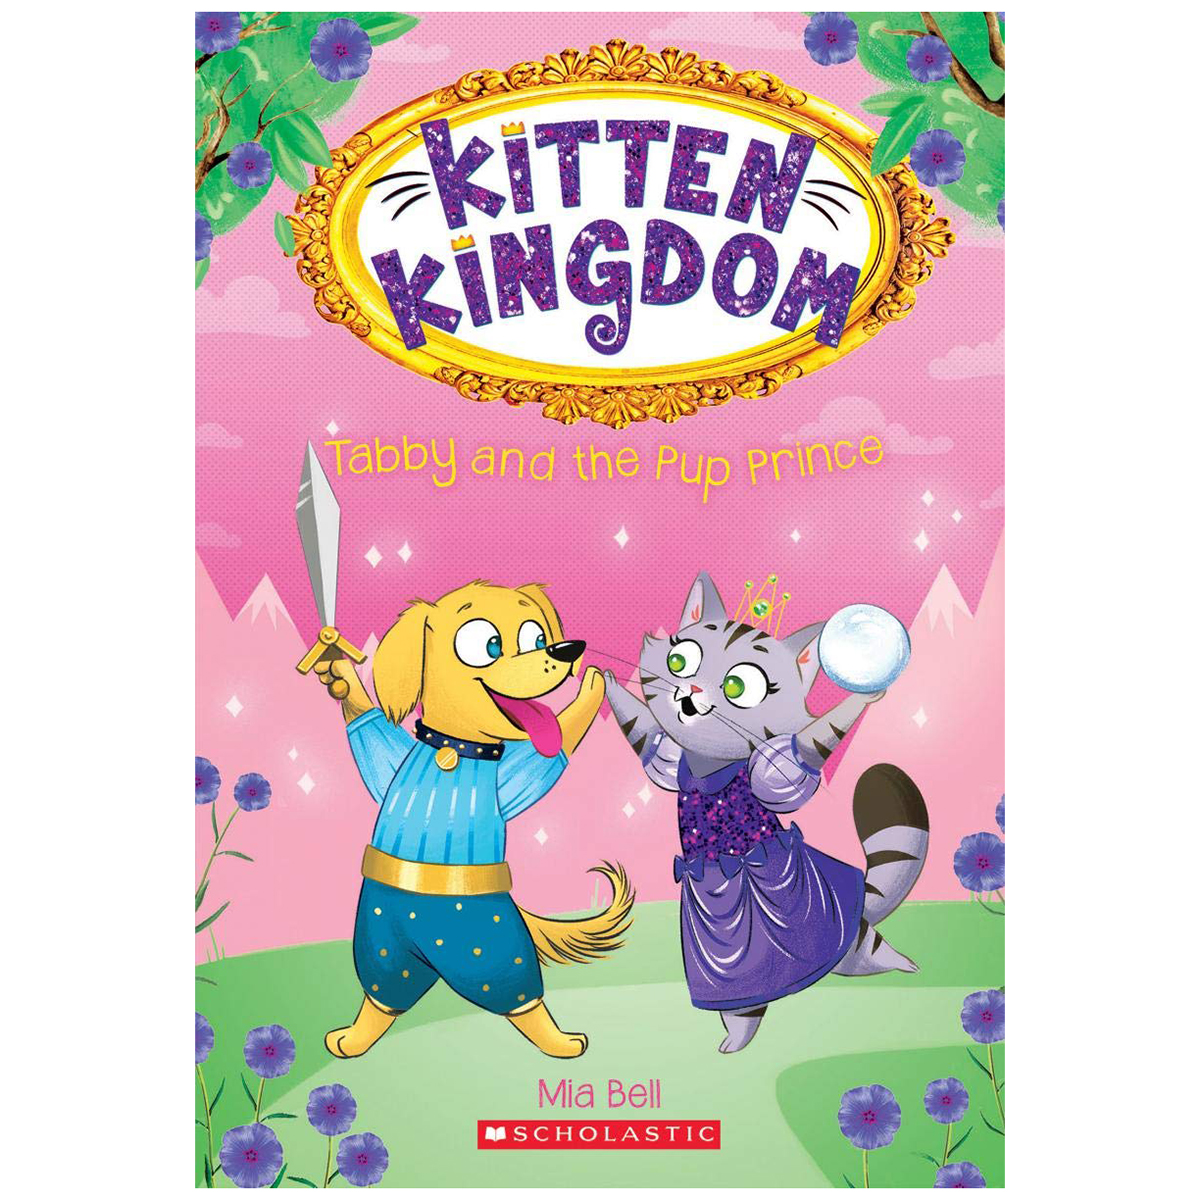 Tabby and the Pup Prince (Kitten Kingdom #2)